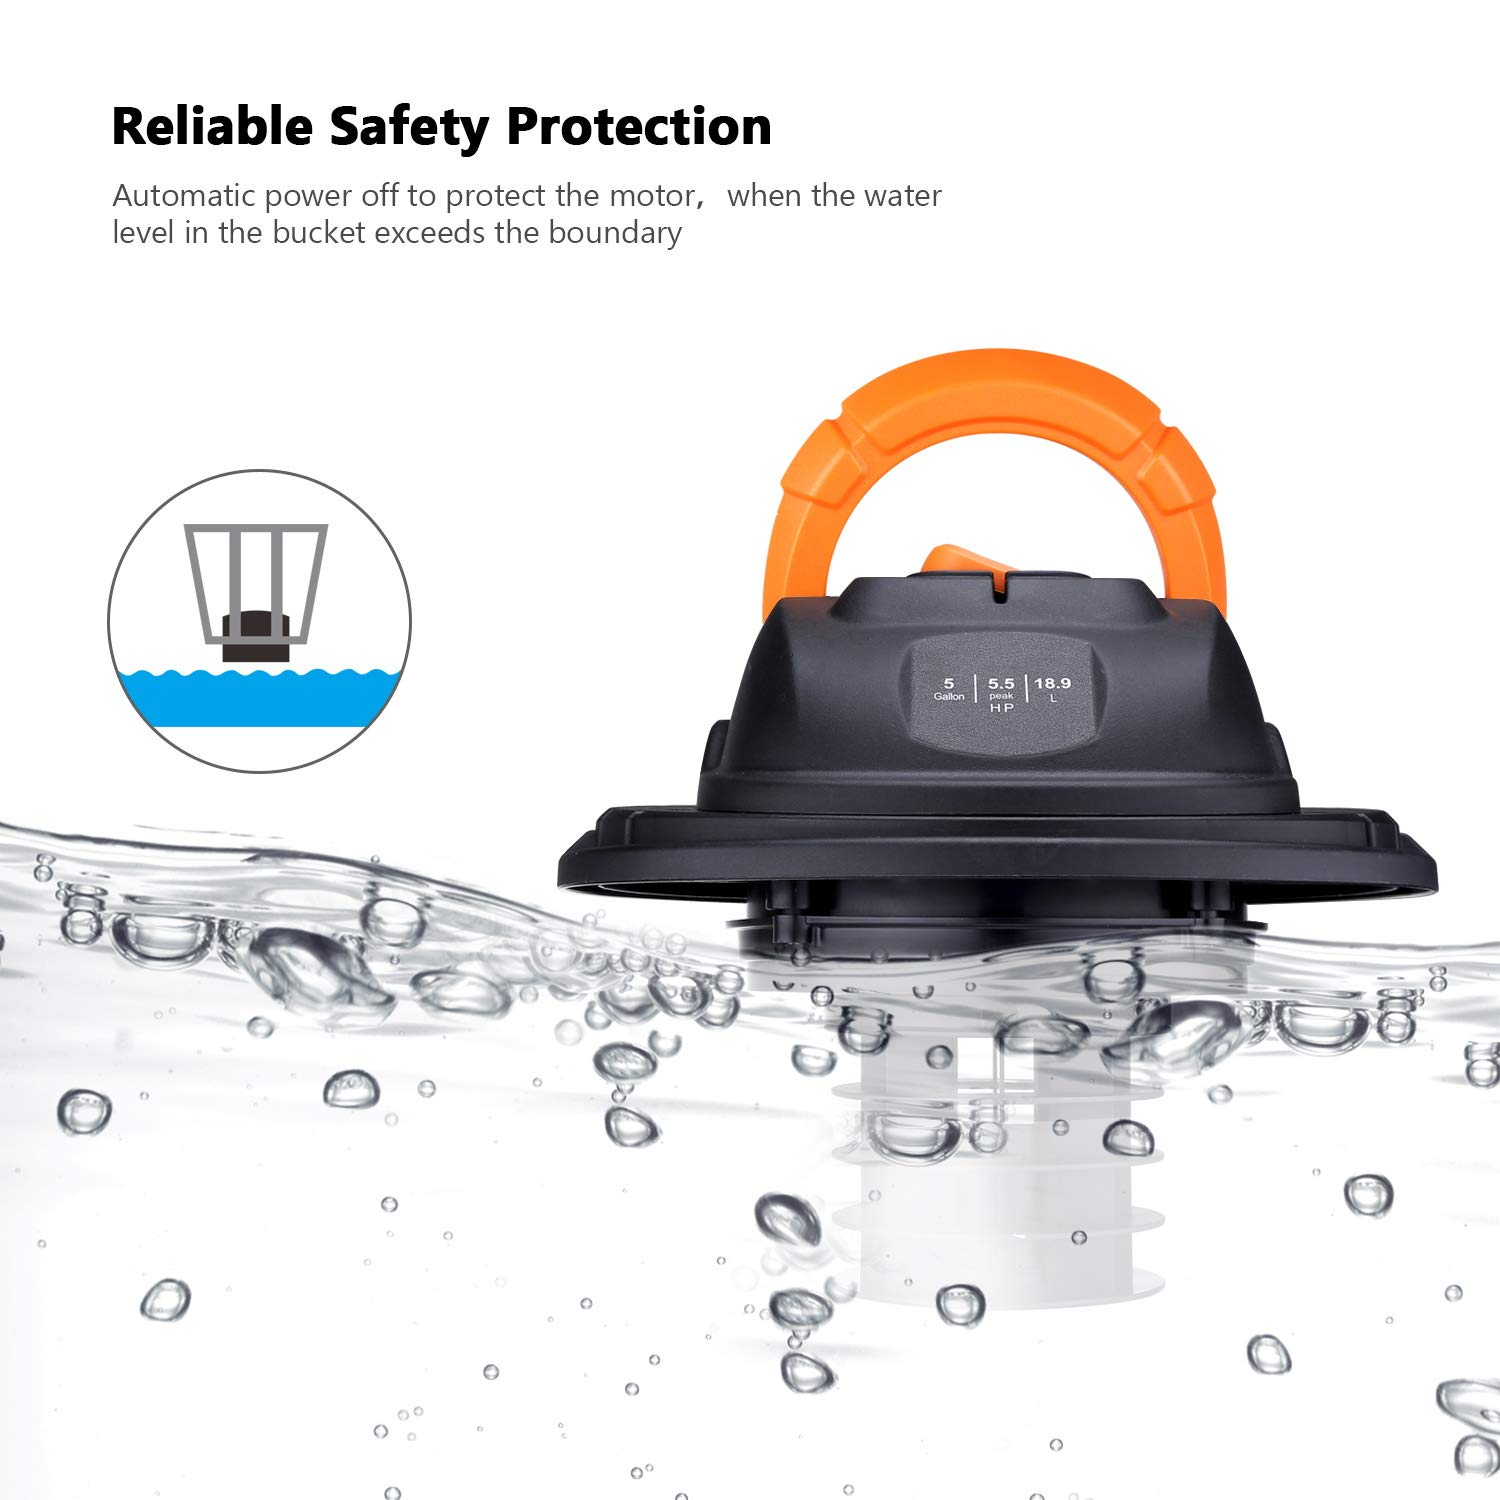 TACKLIFE Wet Dry Vacuum, 5 Gallon, 5.5 Peak HP with 20 FT Clean Range, 4-Layer Filtration System and Safety Buoy Technology for Dry/Wet/Blowing, Multipurpose Accessories Included - PVC01A by TACKLIFE (Image #3)